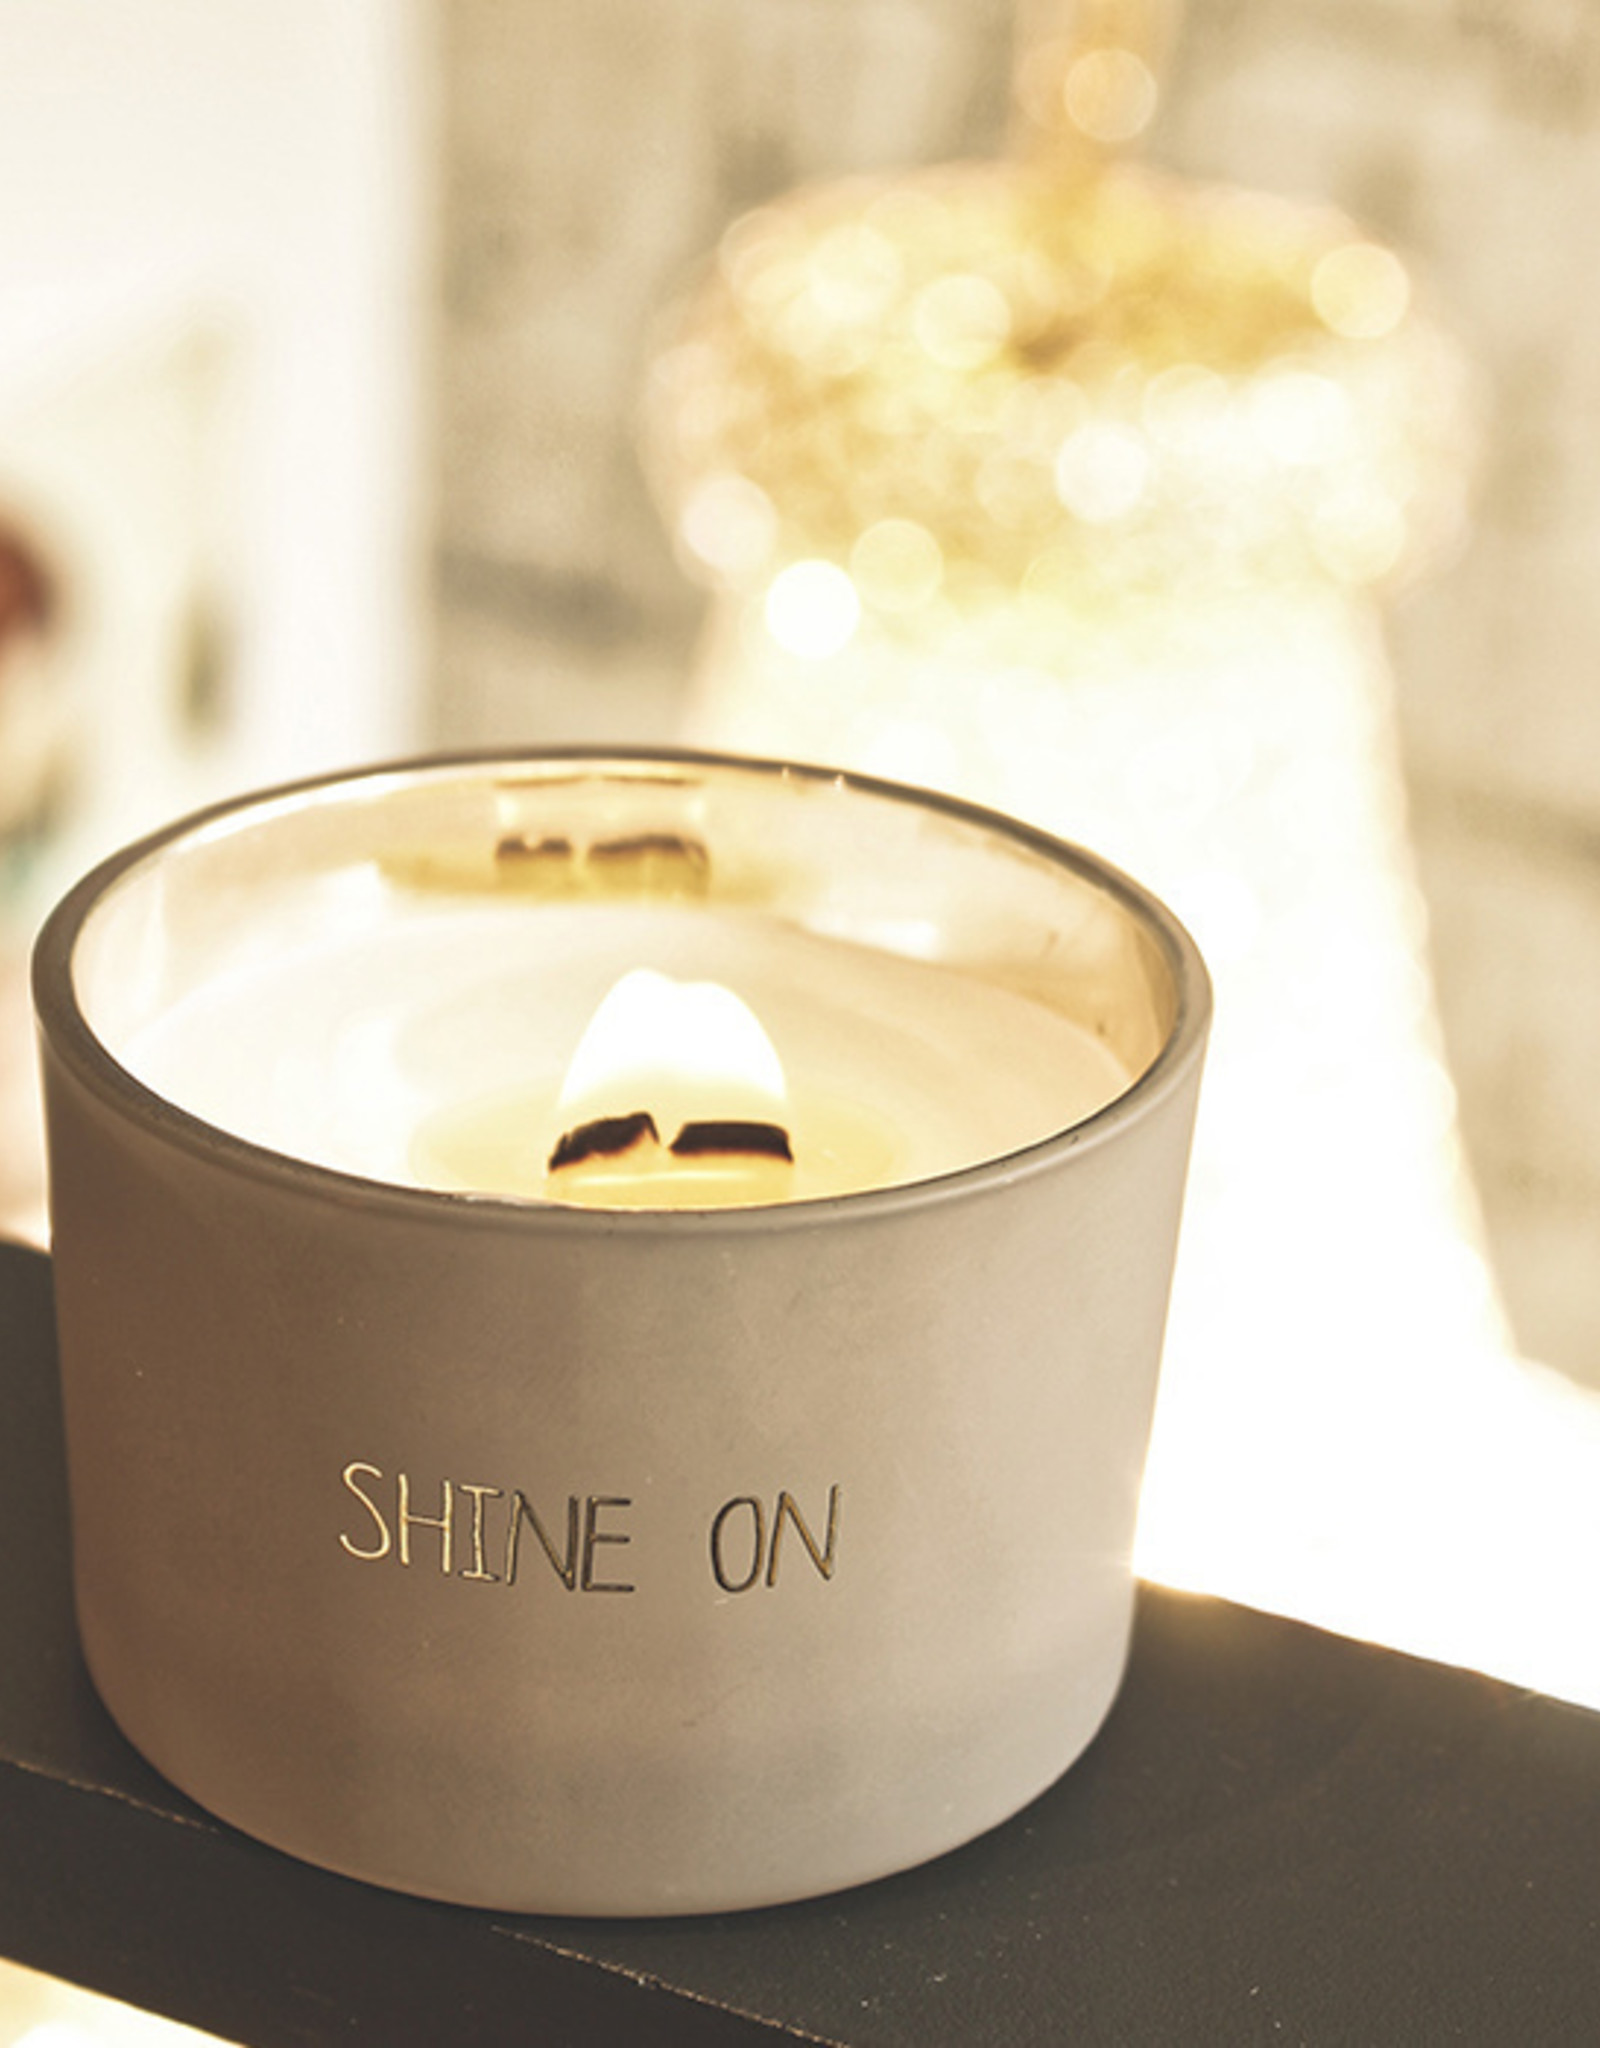 My flame Lifestyle SOJAKAARS MET HOUTEN LONT | SHINE ON  |  GEUR : FIG'S DELIGHT